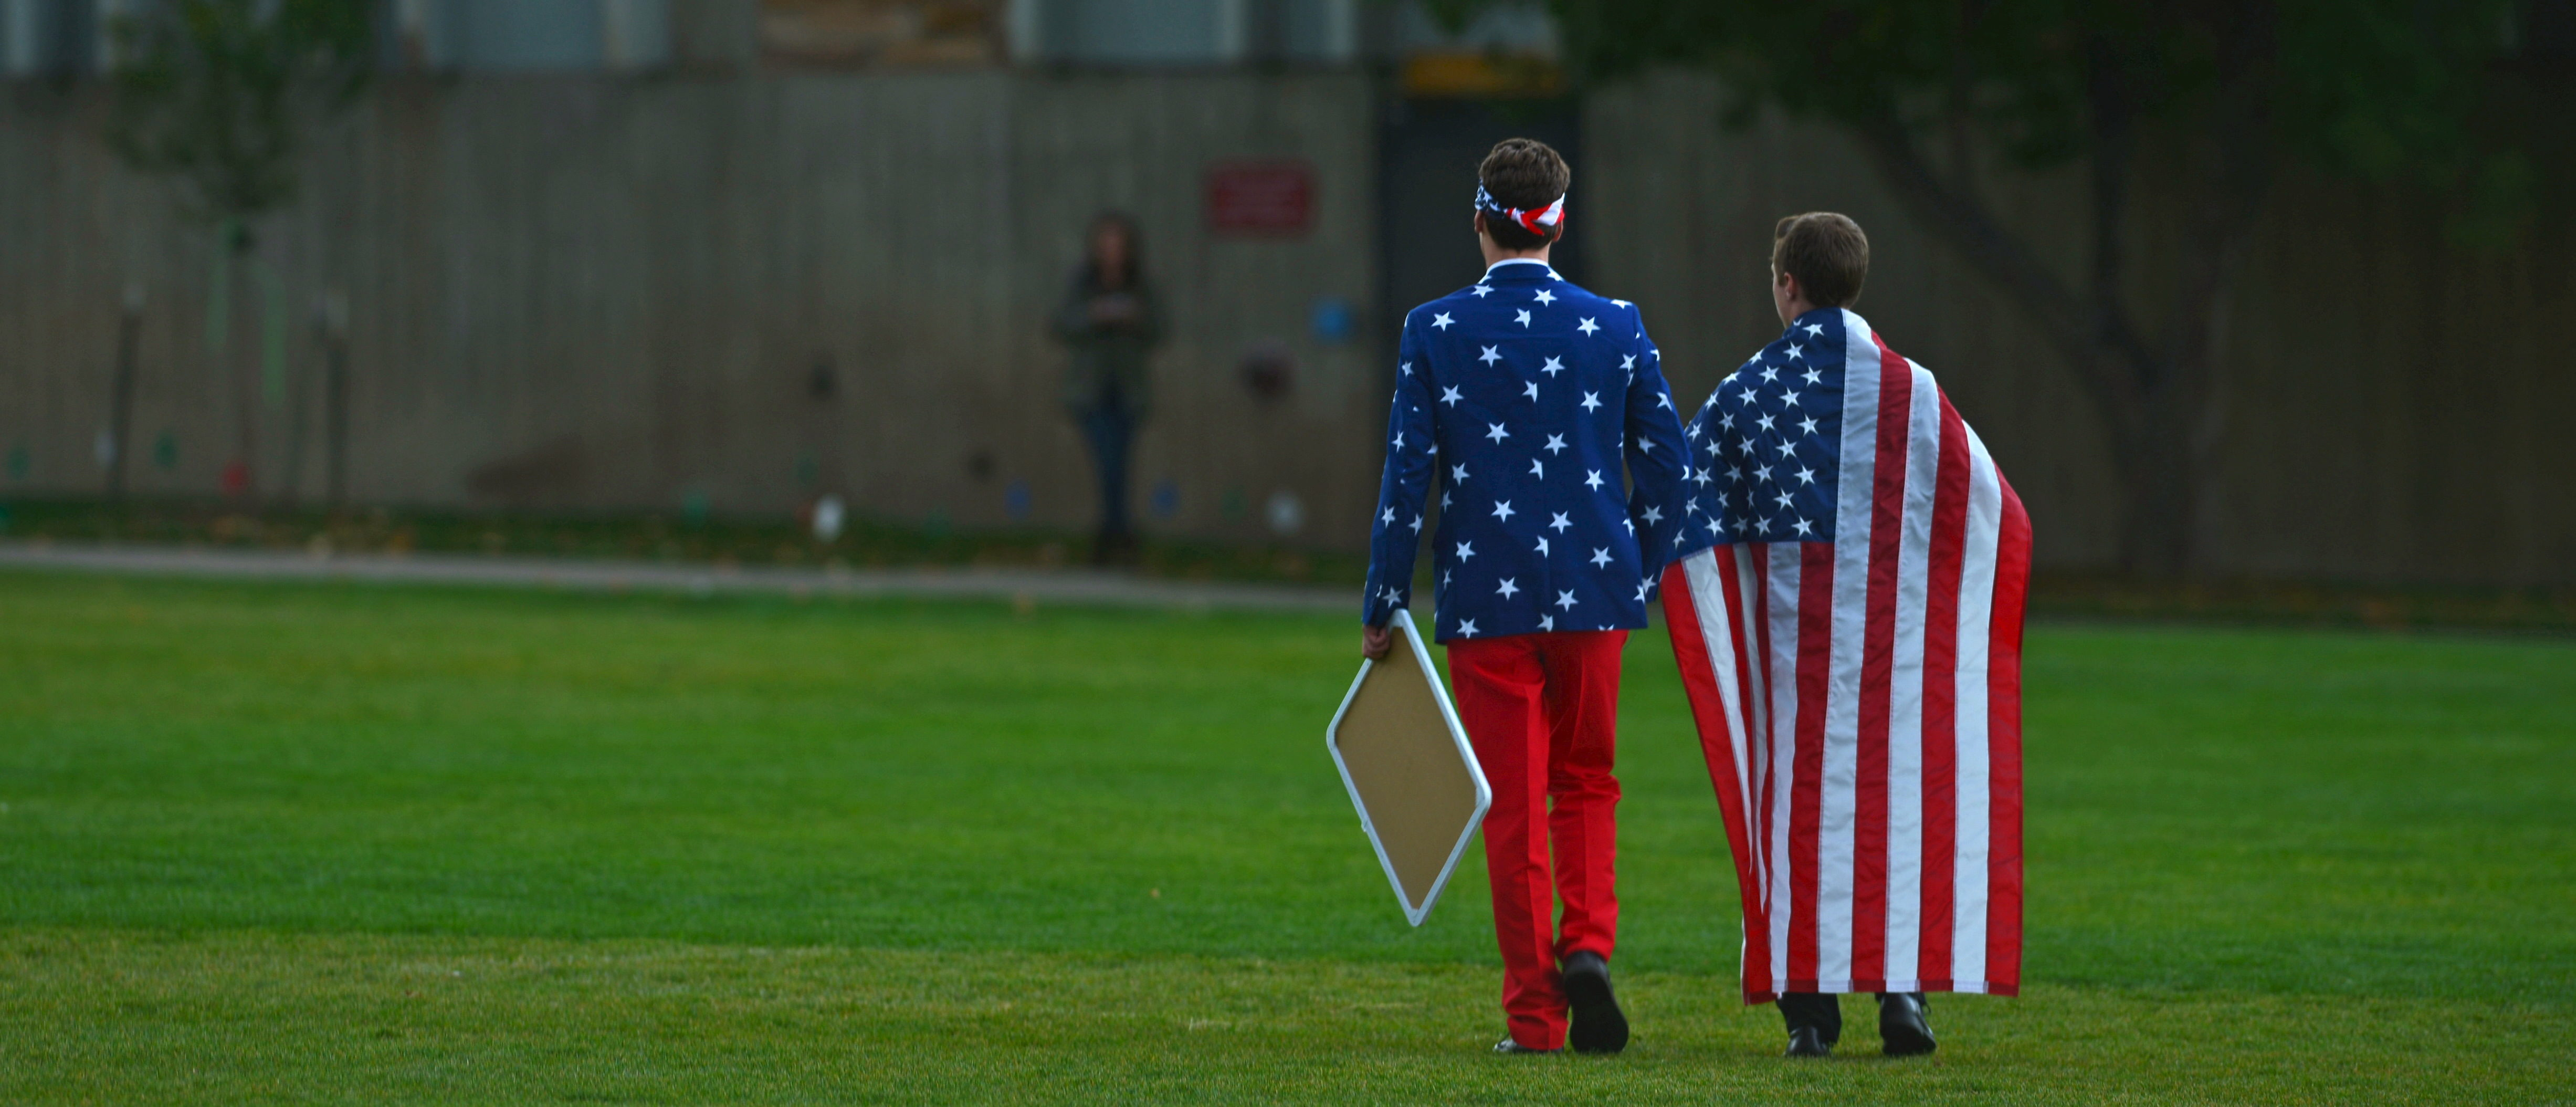 "People wear the American flag as students and protesters gather at the ""Free Speech Zone"" located at the University of Colorado's Business Field, while candidates gather across the street for a forum held by CNBC, before the U.S. Republican presidential candidates debate in Boulder, Colorado, October 28, 2015. REUTERS/Evan Semon TPX IMAGES OF THE DAY - GF20000037113"